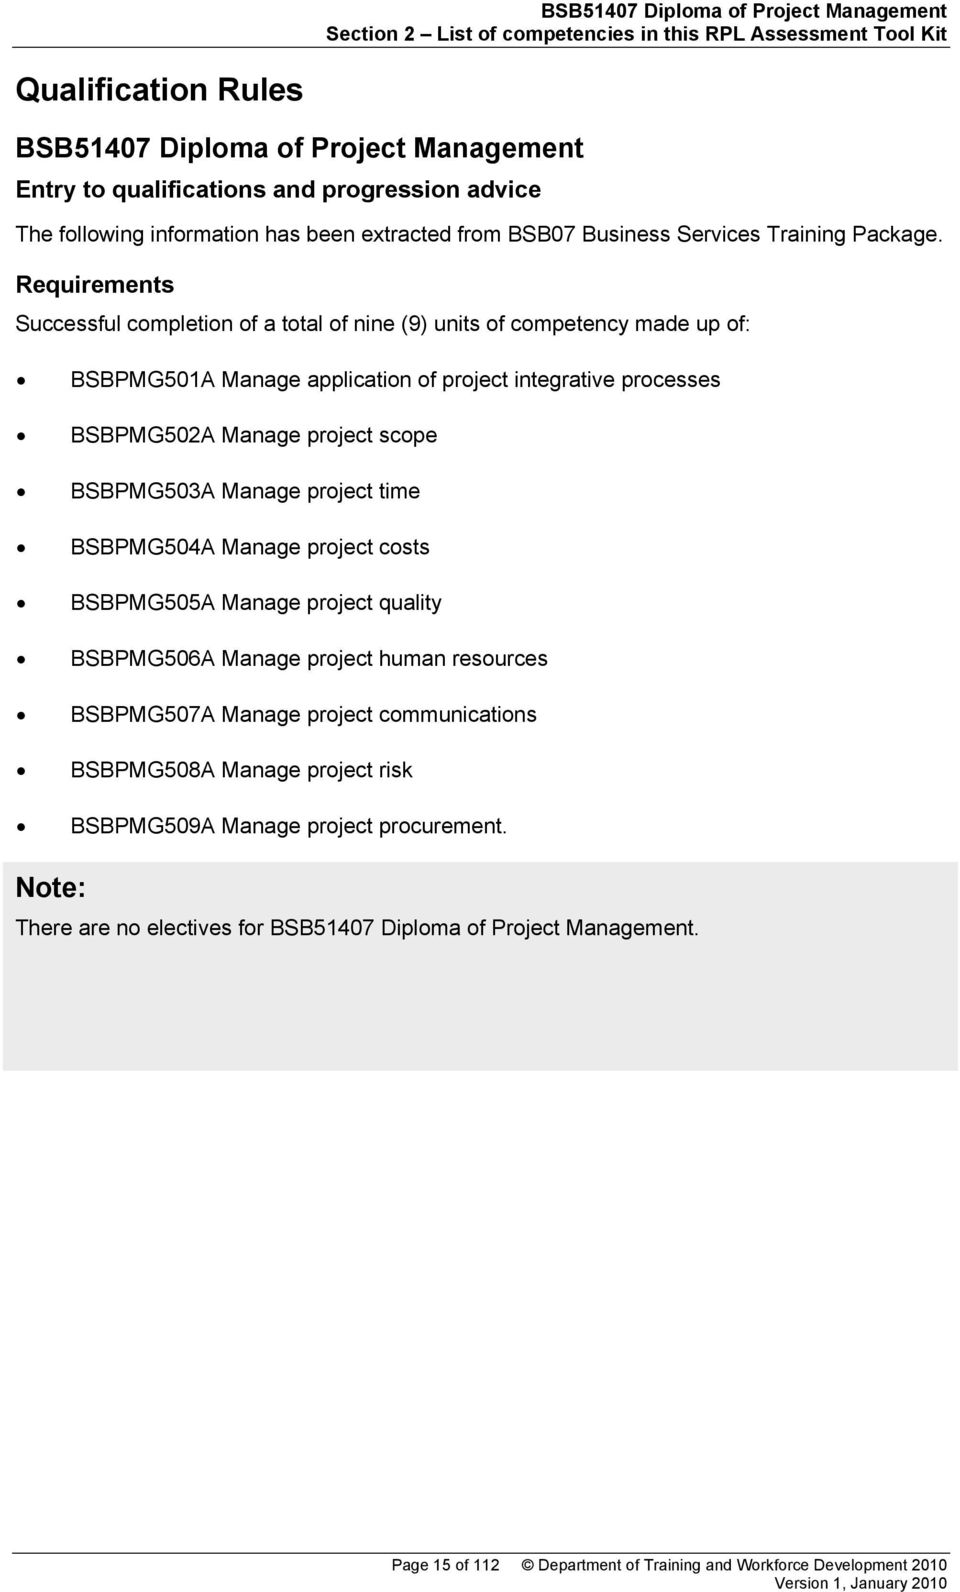 Requirements Successful completion of a total of nine (9) units of competency made up of: BSBPMG501A Manage application of project integrative processes BSBPMG502A Manage project scope BSBPMG503A